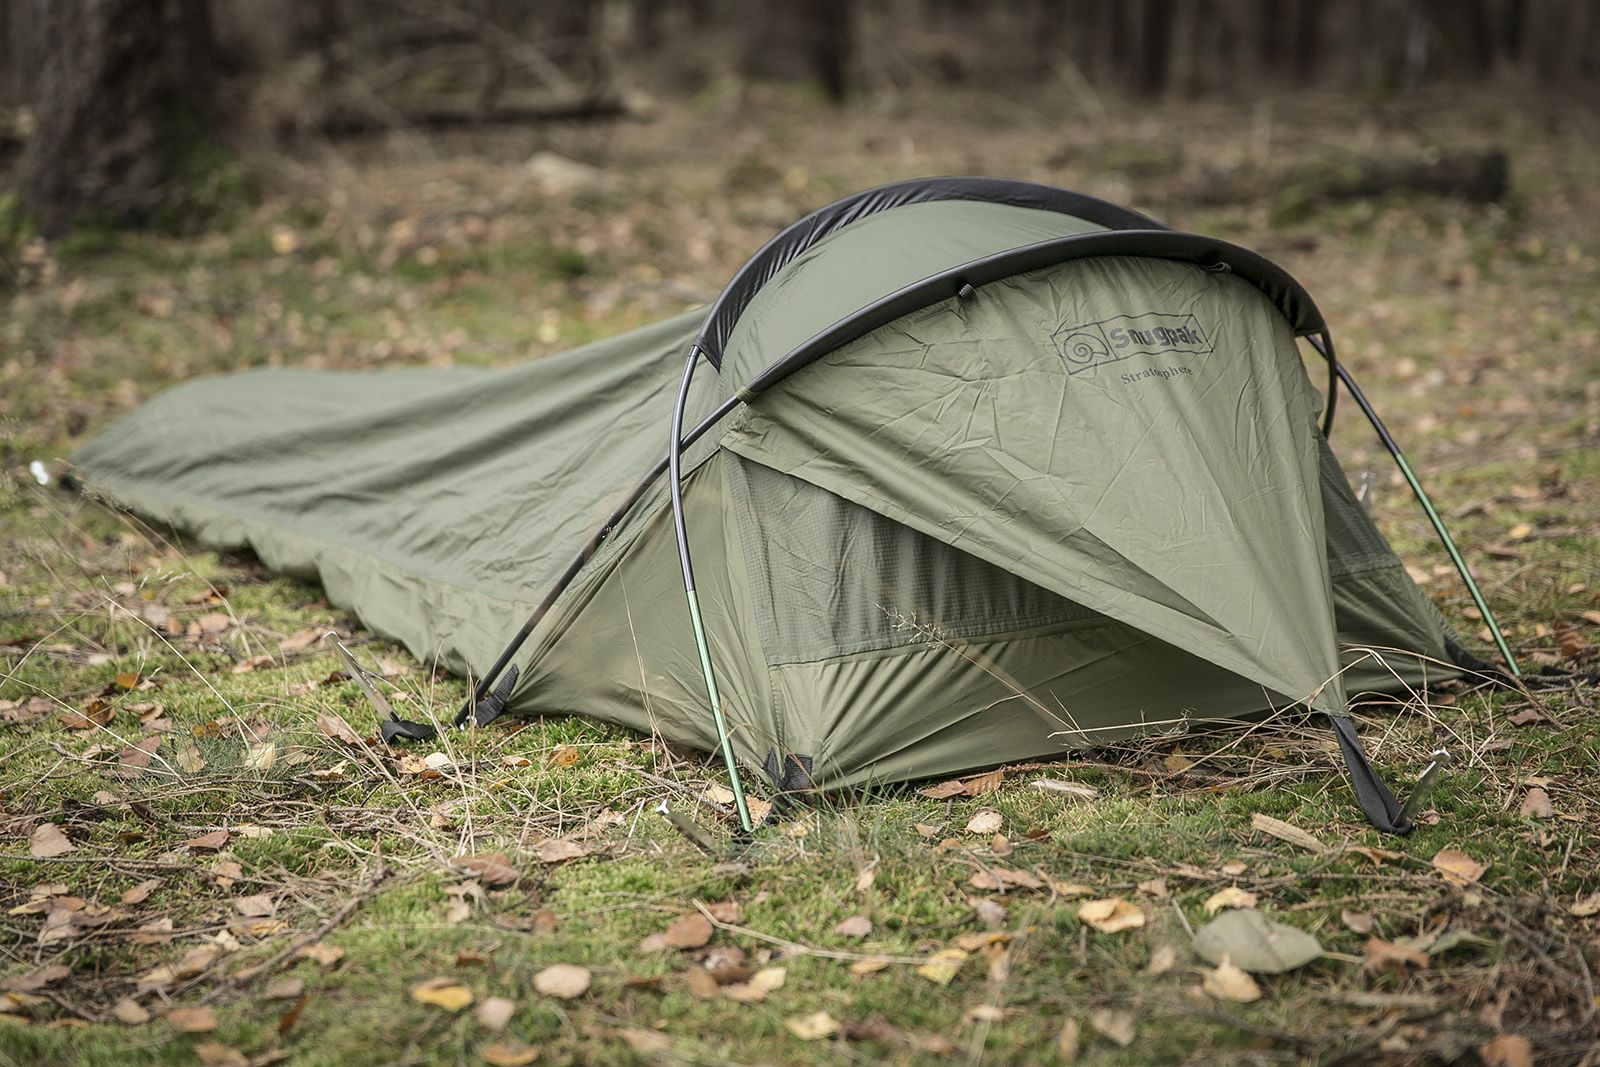 The Stratosphere from Snugpak is a one-man bivvy shelter though calling it a & The Stratosphere from Snugpak is a one-man bivvy shelter though ...